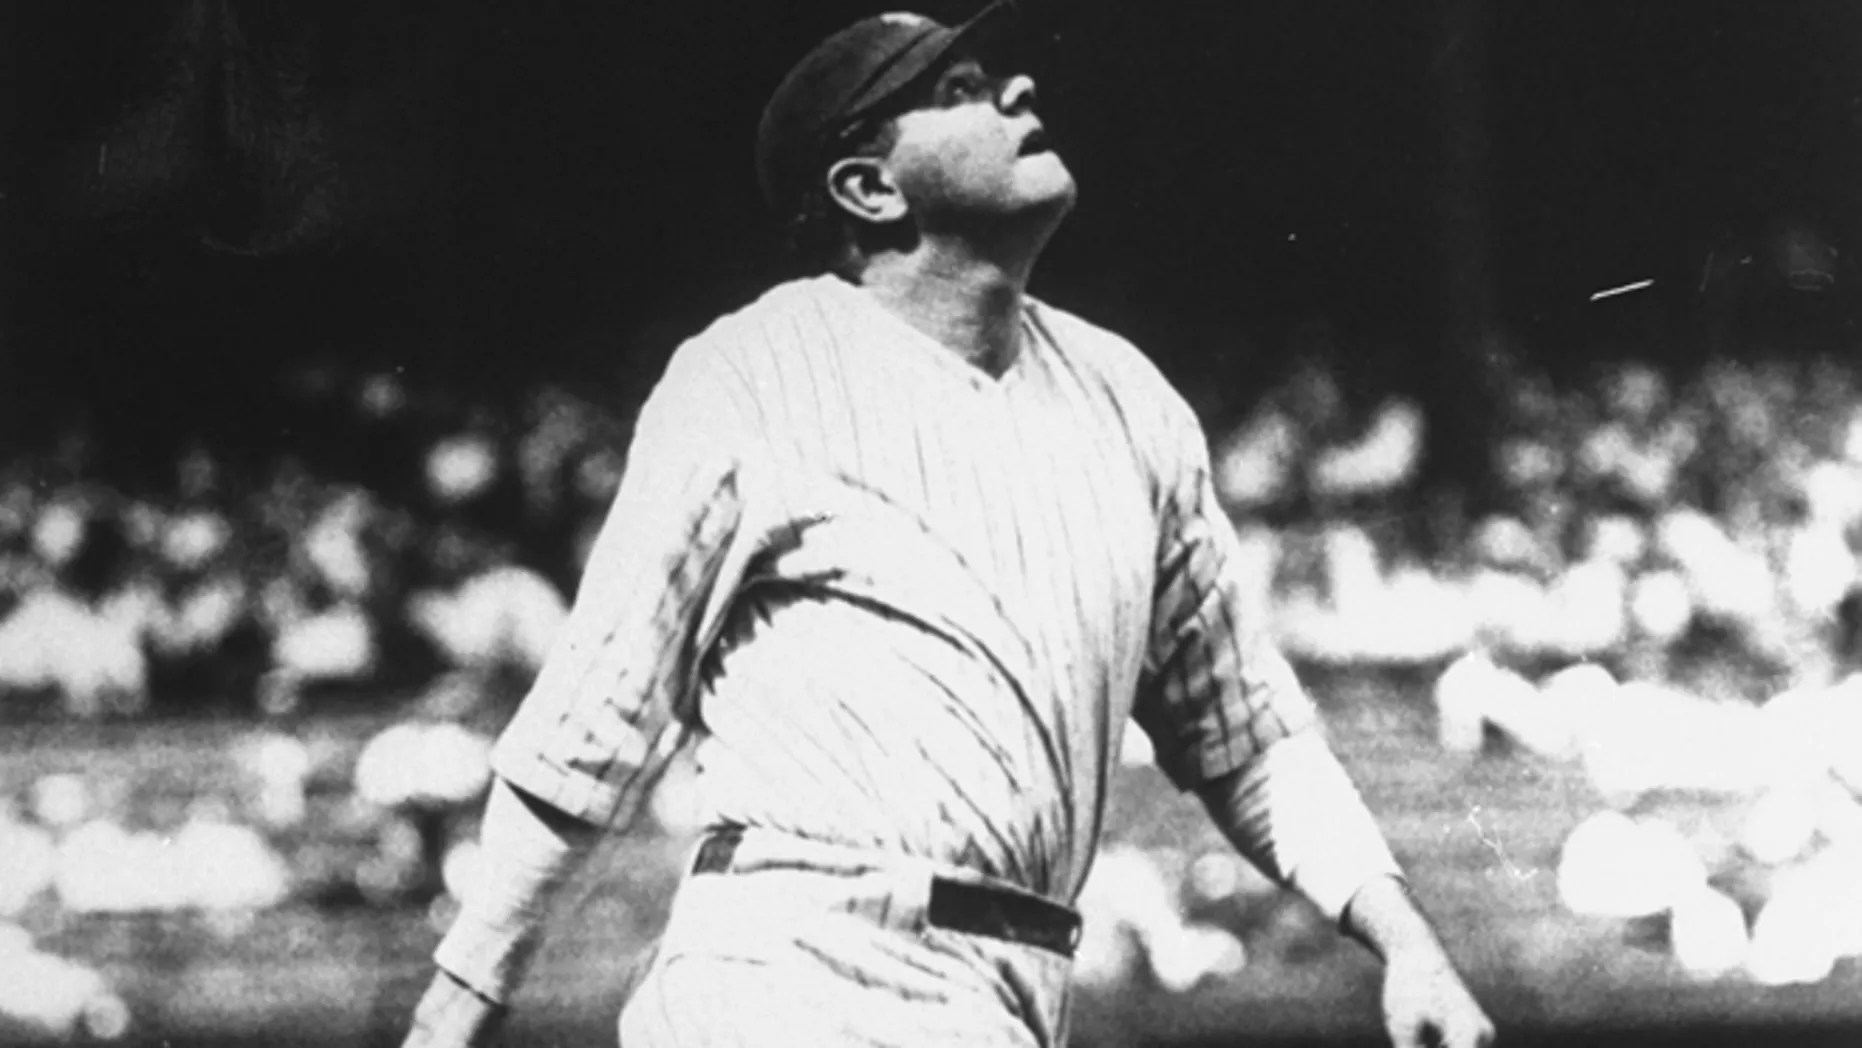 Babe Ruth, shown with the New York Yankees in 1927, was a young pitcher with the Boston Red Sox in 1916, when the Sox last played the Dodgers in the World Series